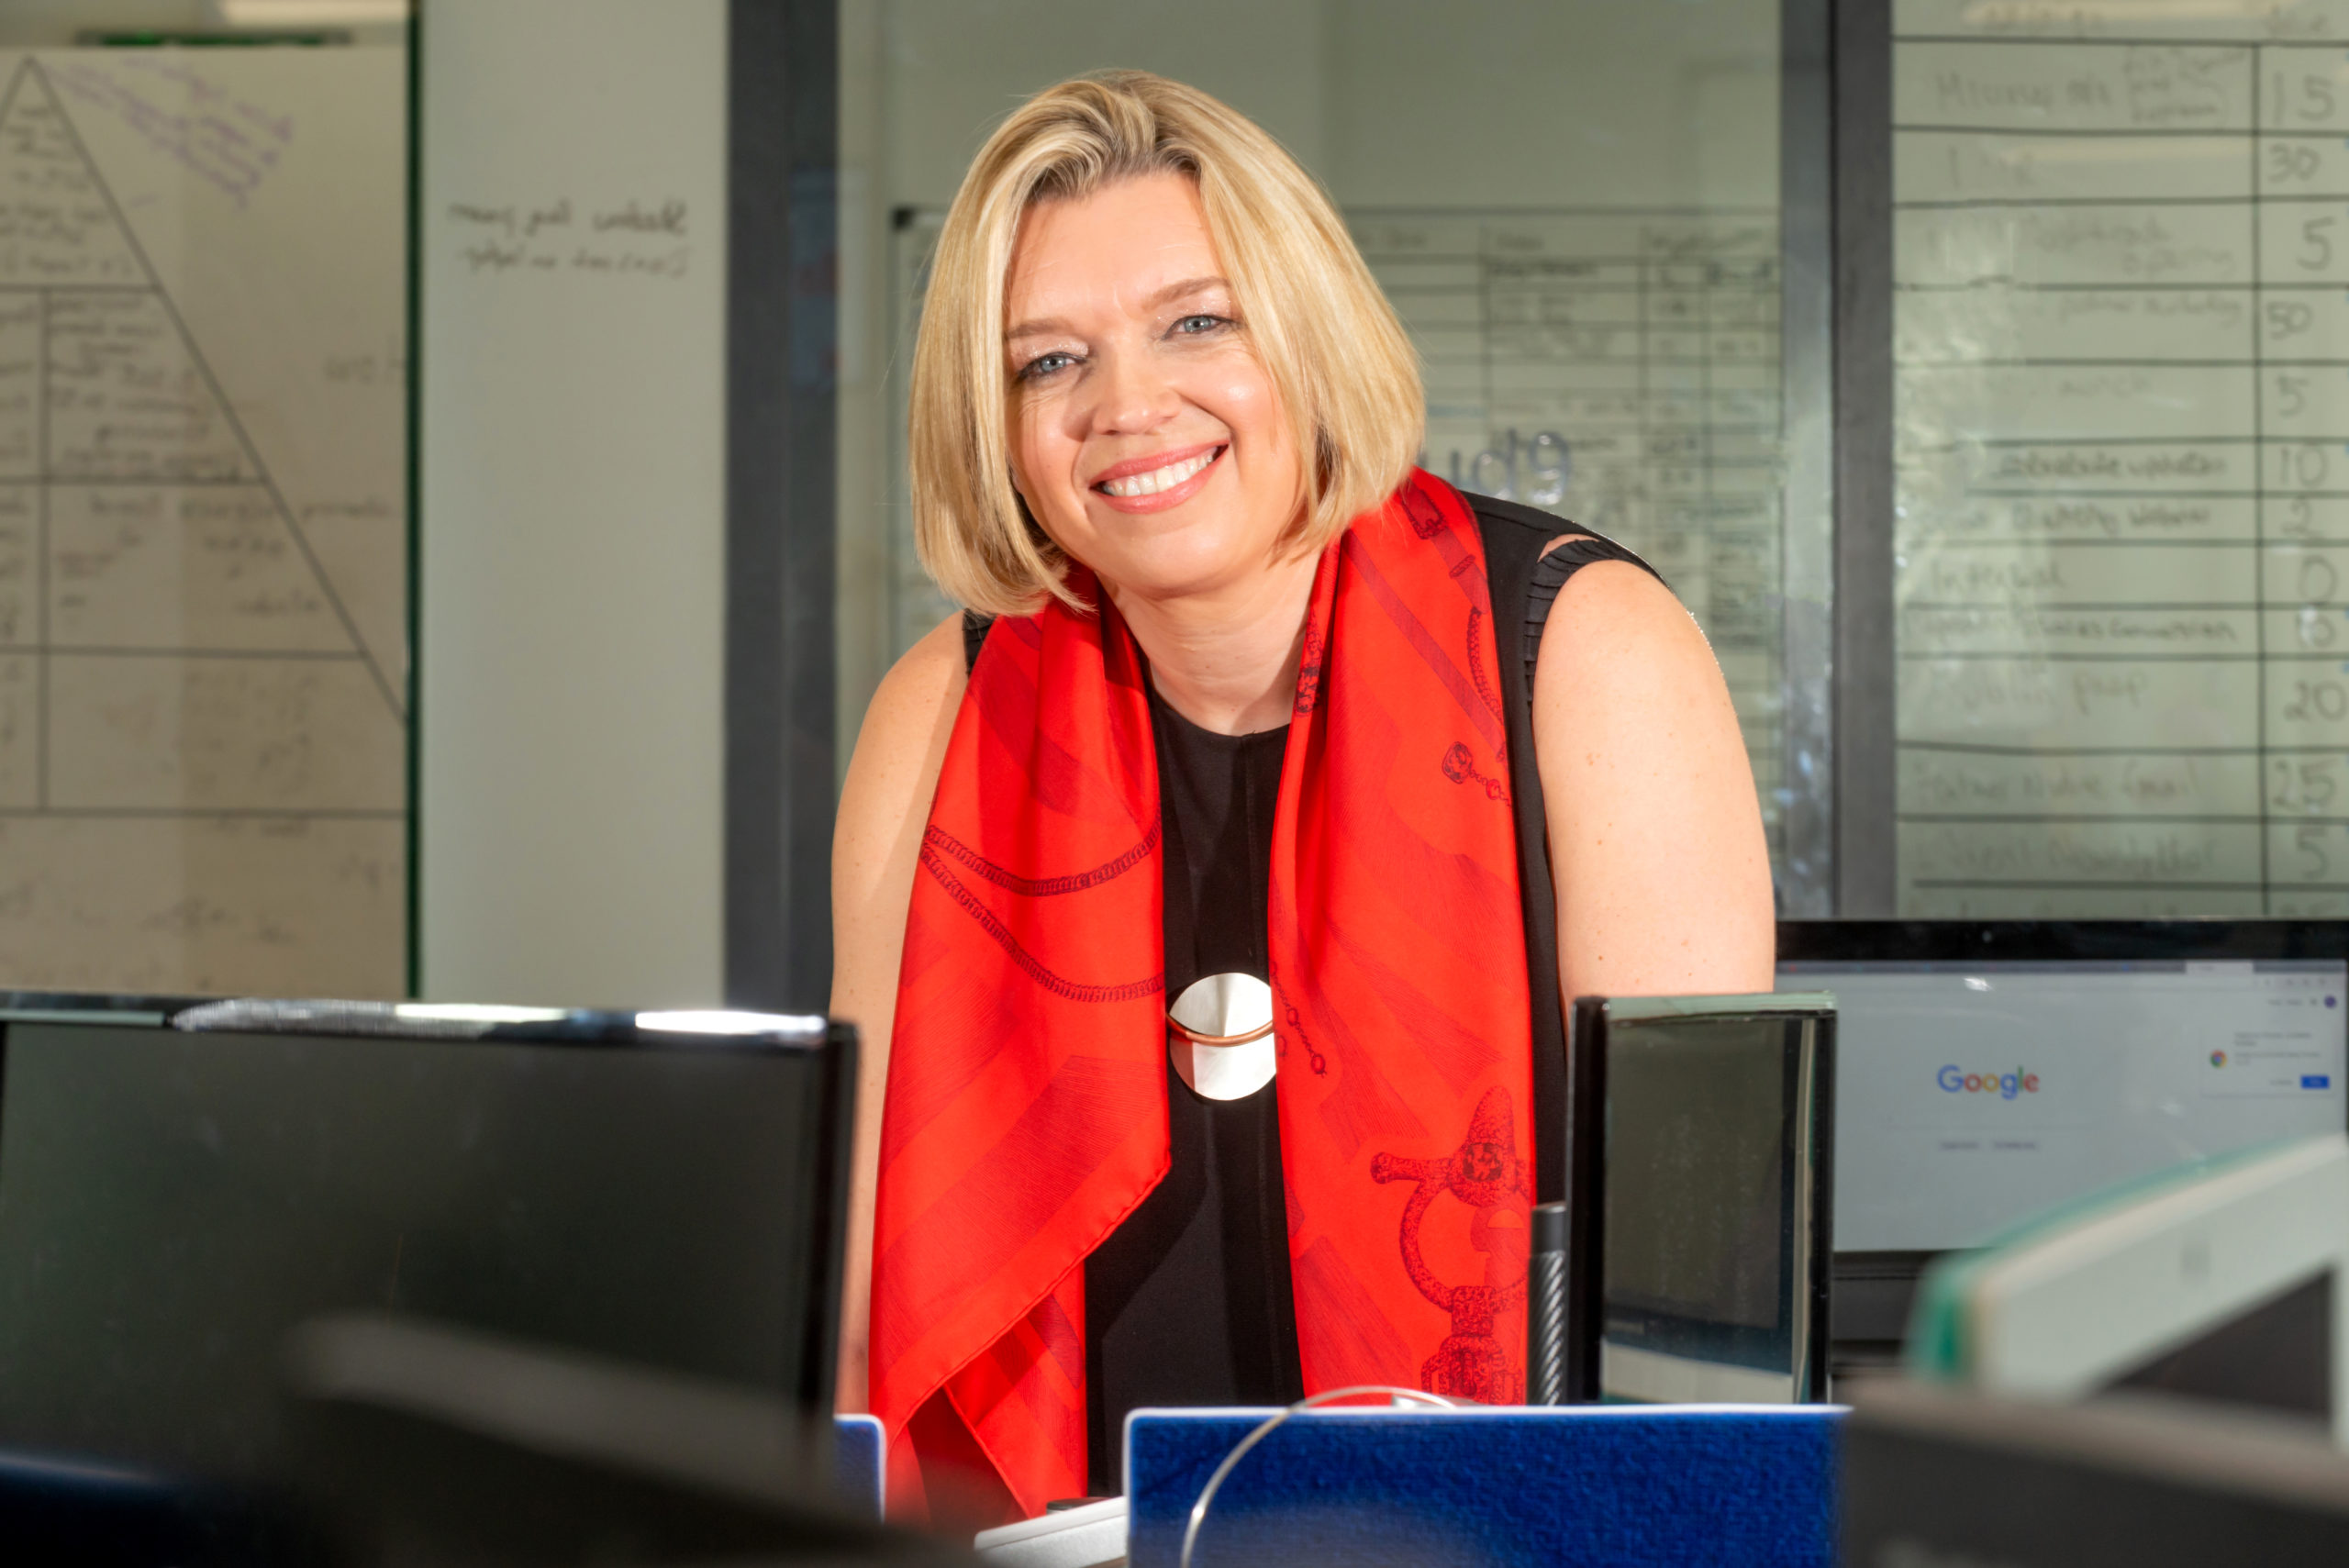 Carlene Jackson, CEO of Cloud9 Insight, based in Brighton, East Sussex